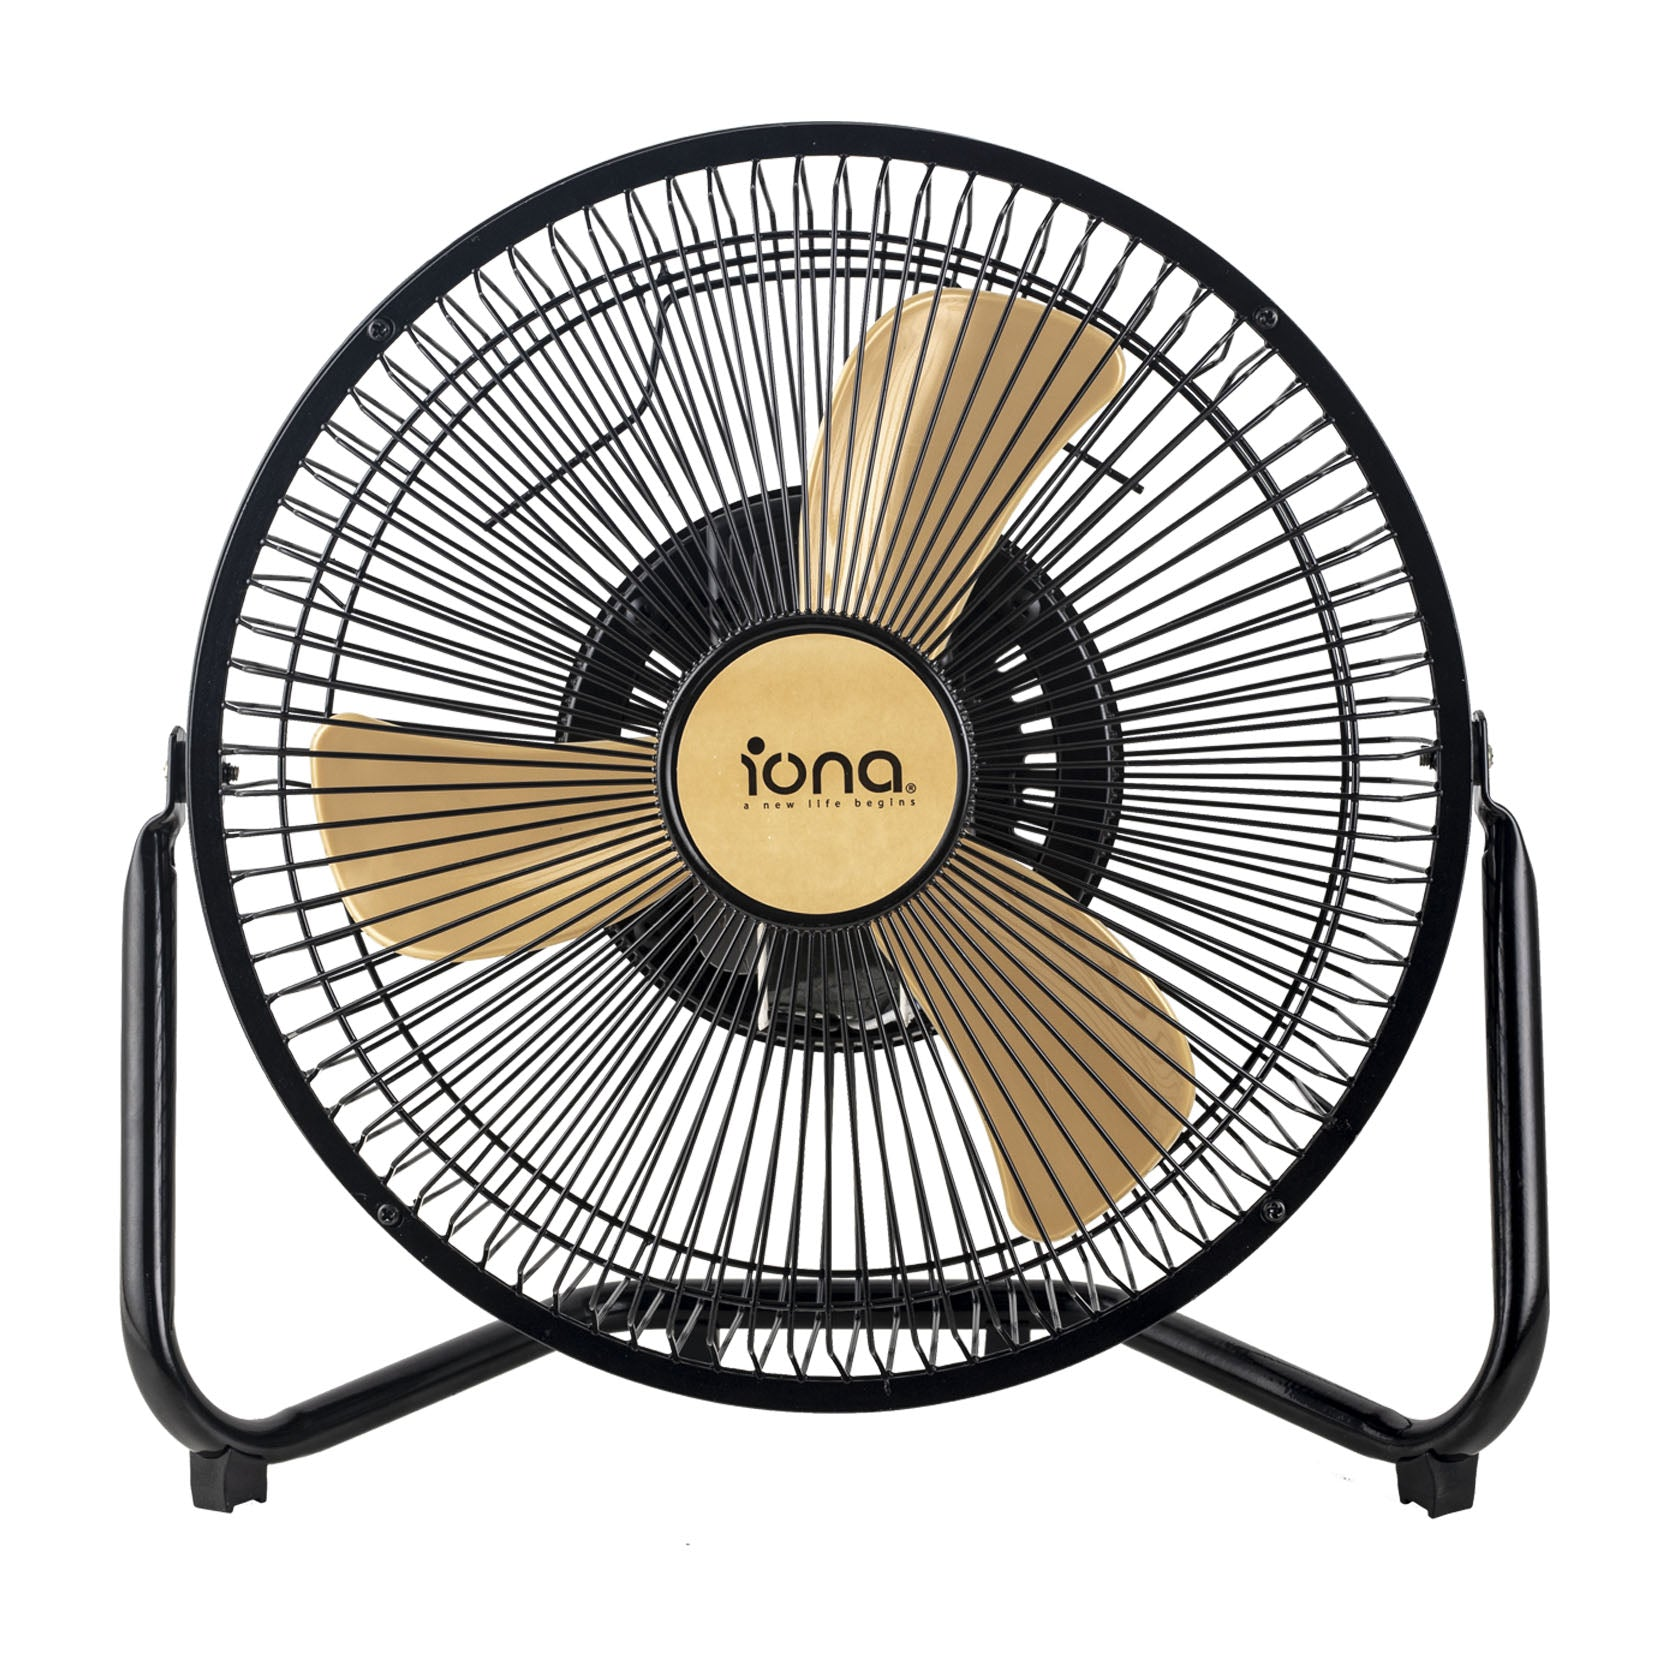 "Iona 9"" High Velocity Floor Fan - Typhoon M2"